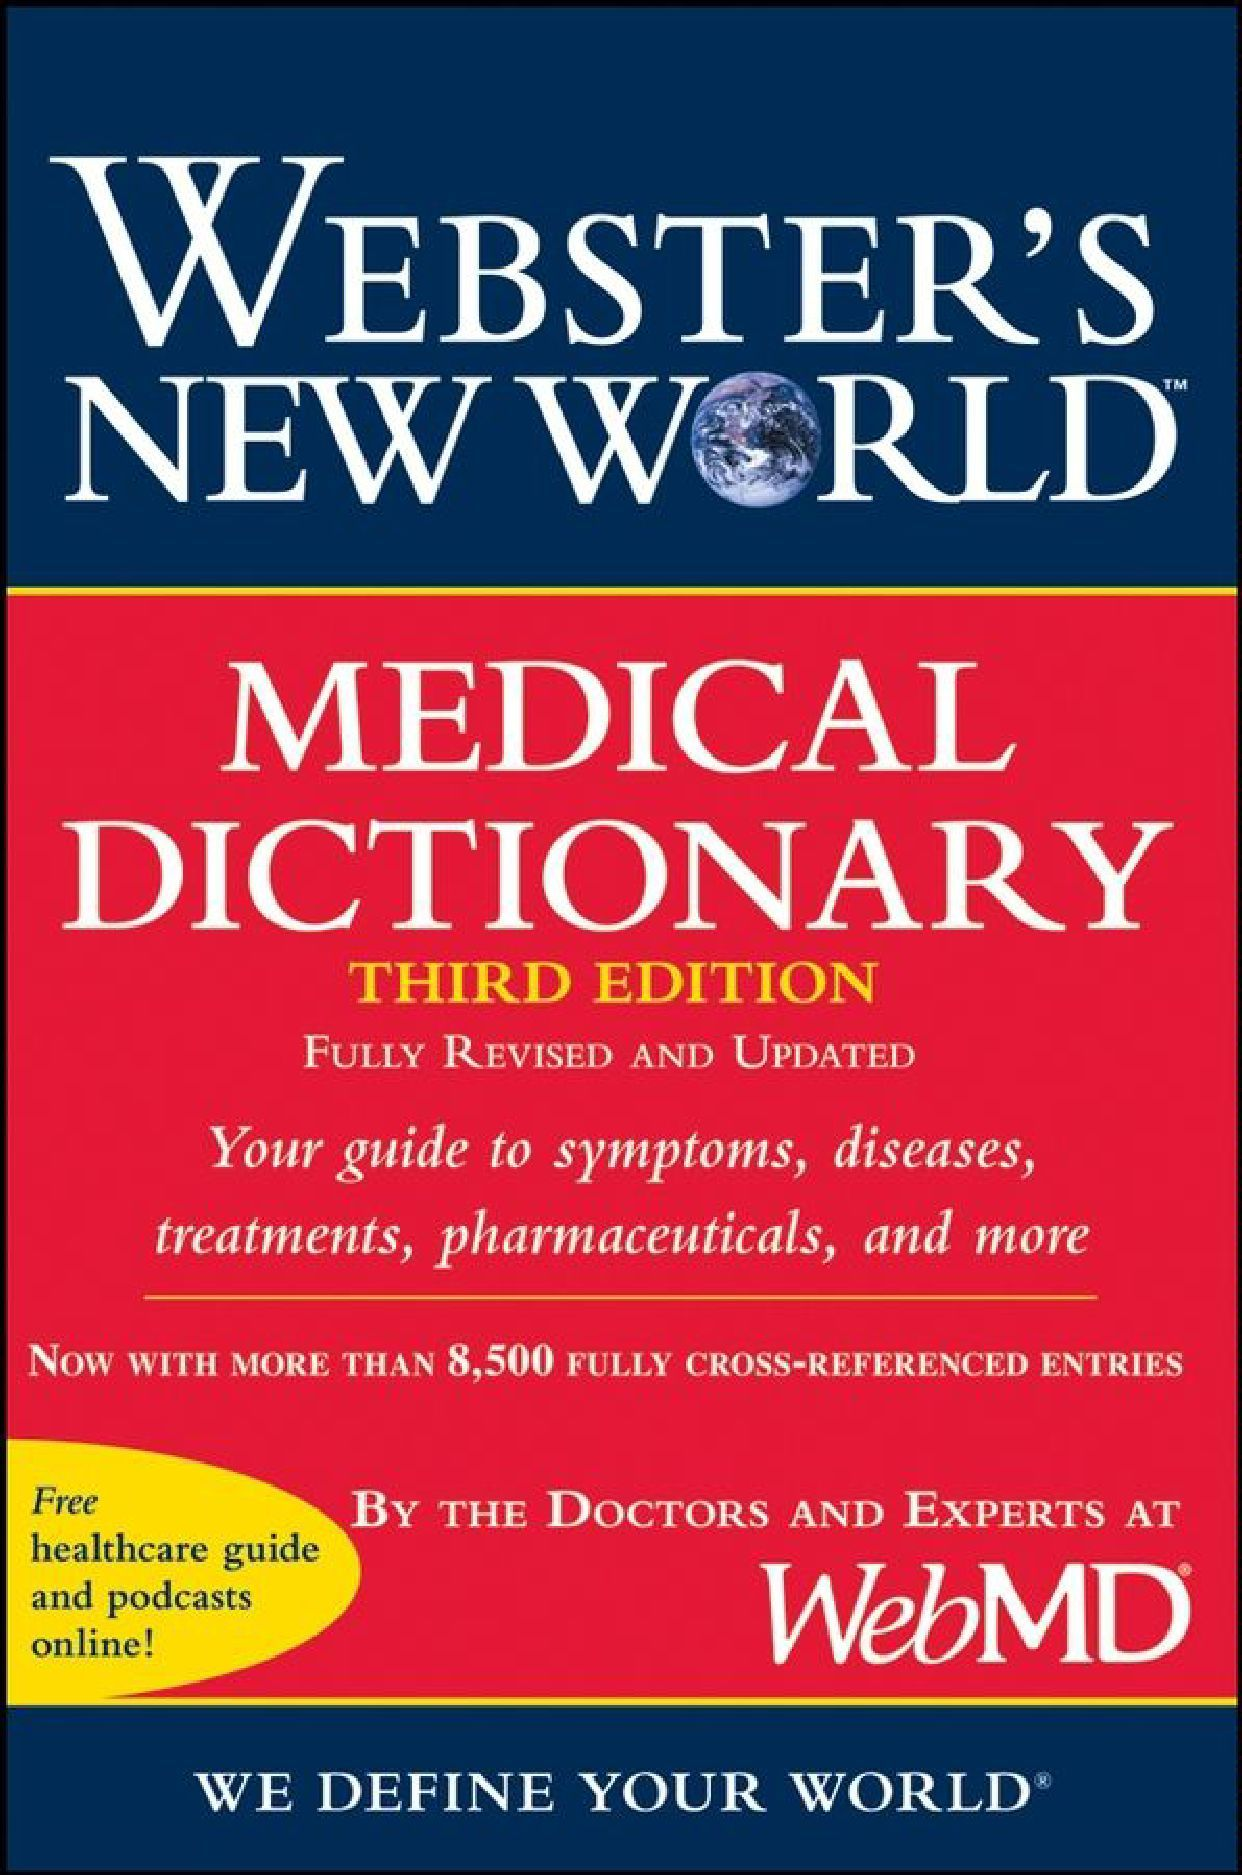 Webster's New World Medical Dictionary, Fully Revised and